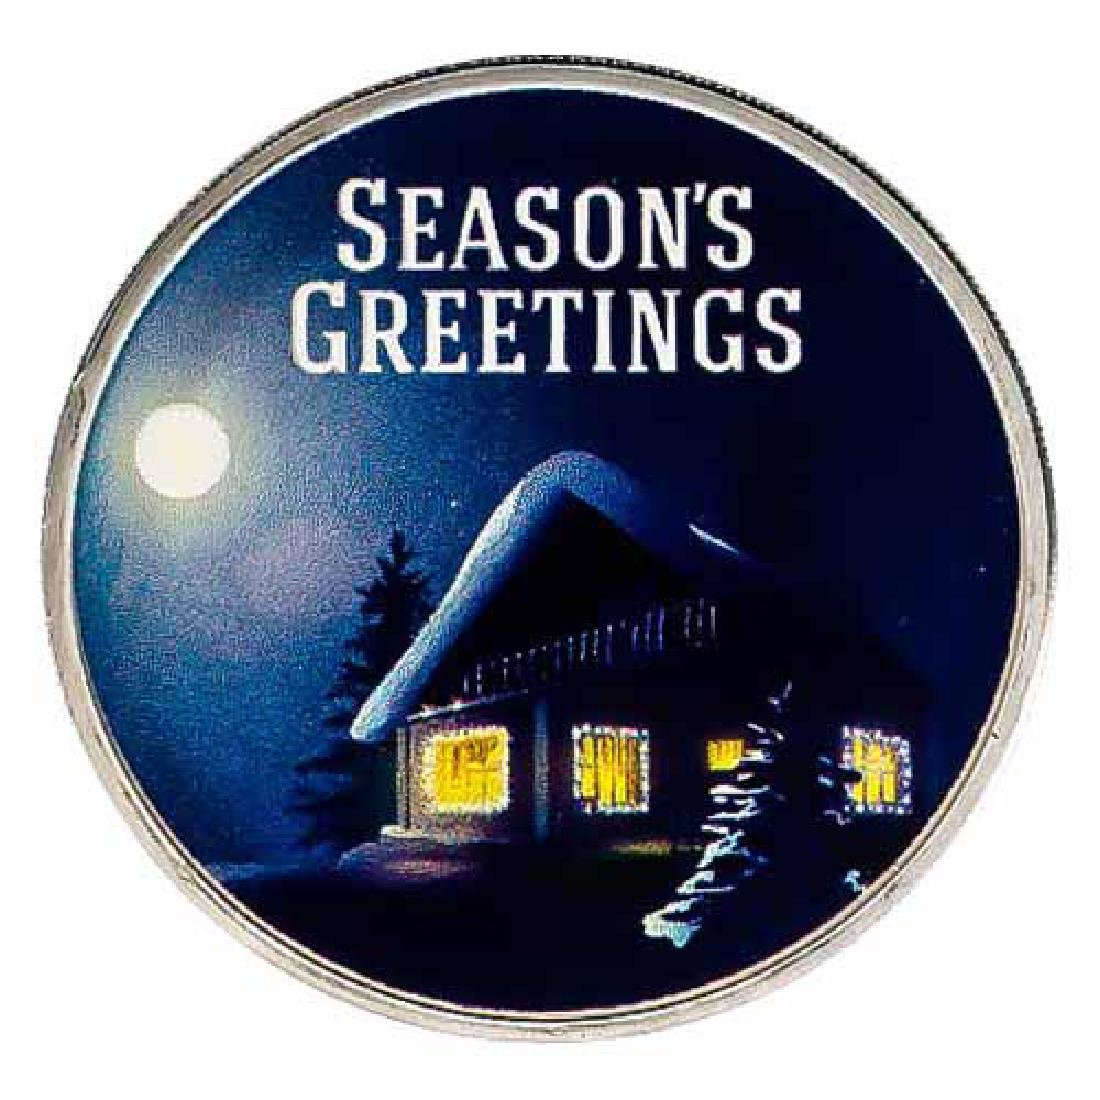 Colorized Christmas 2017 Silver Round Seasons Greetings